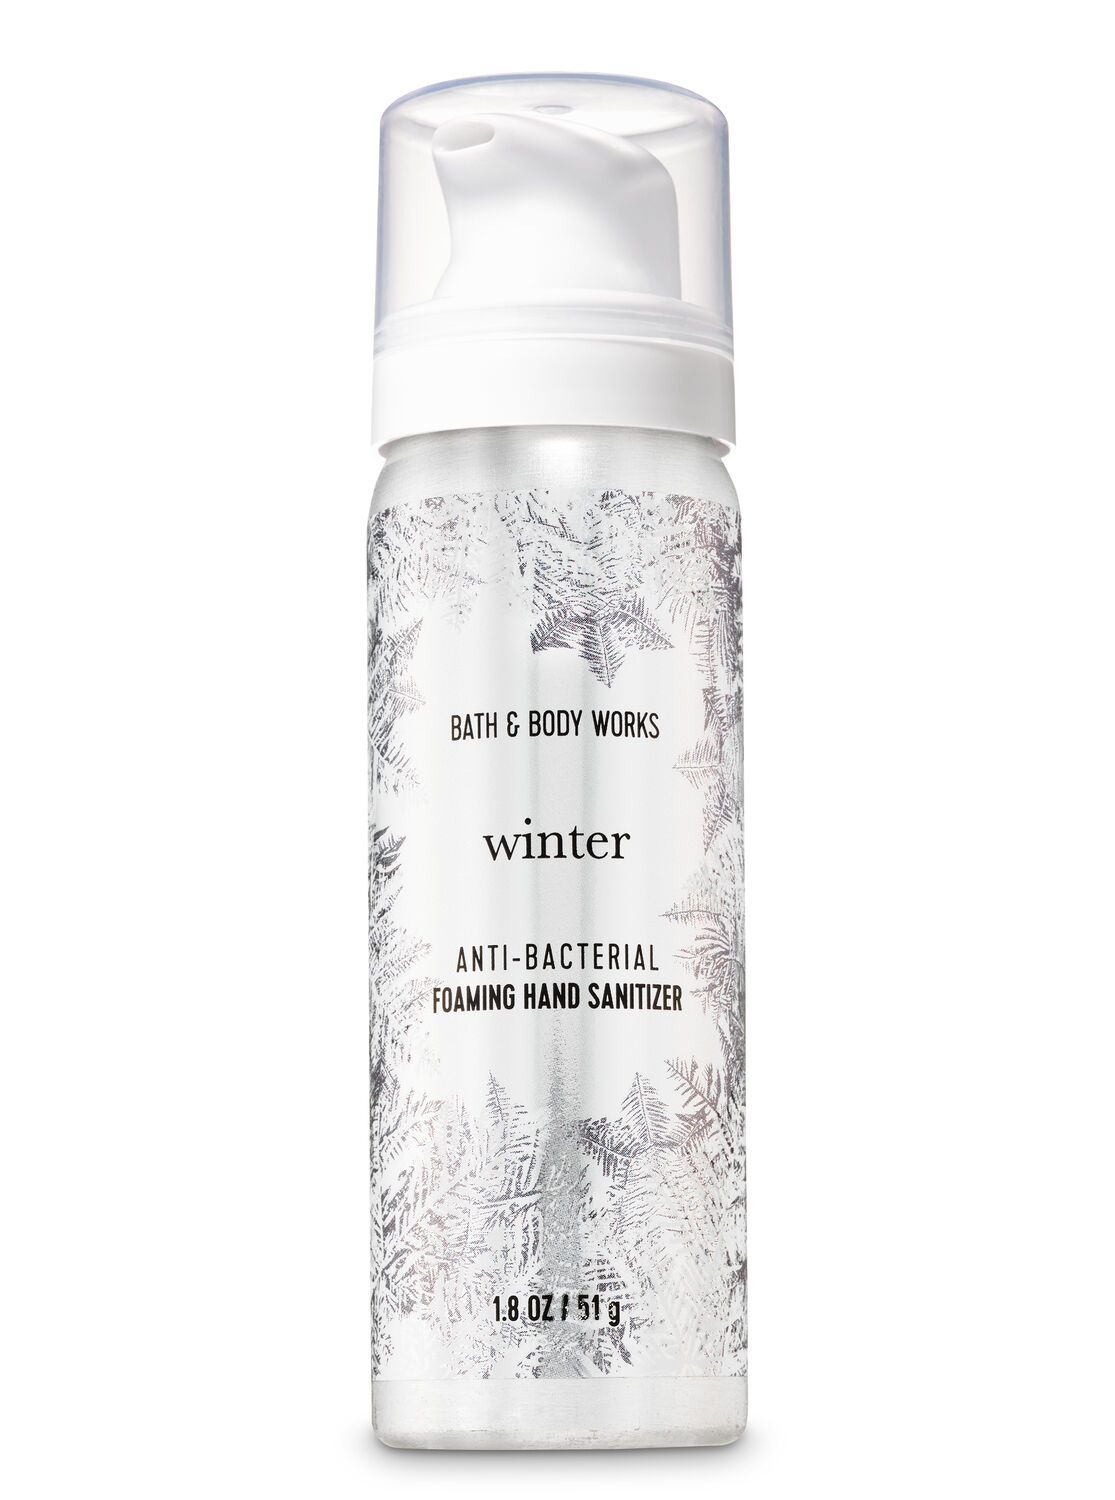 Winter Foaming Hand Sanitizer Hand Sanitizer